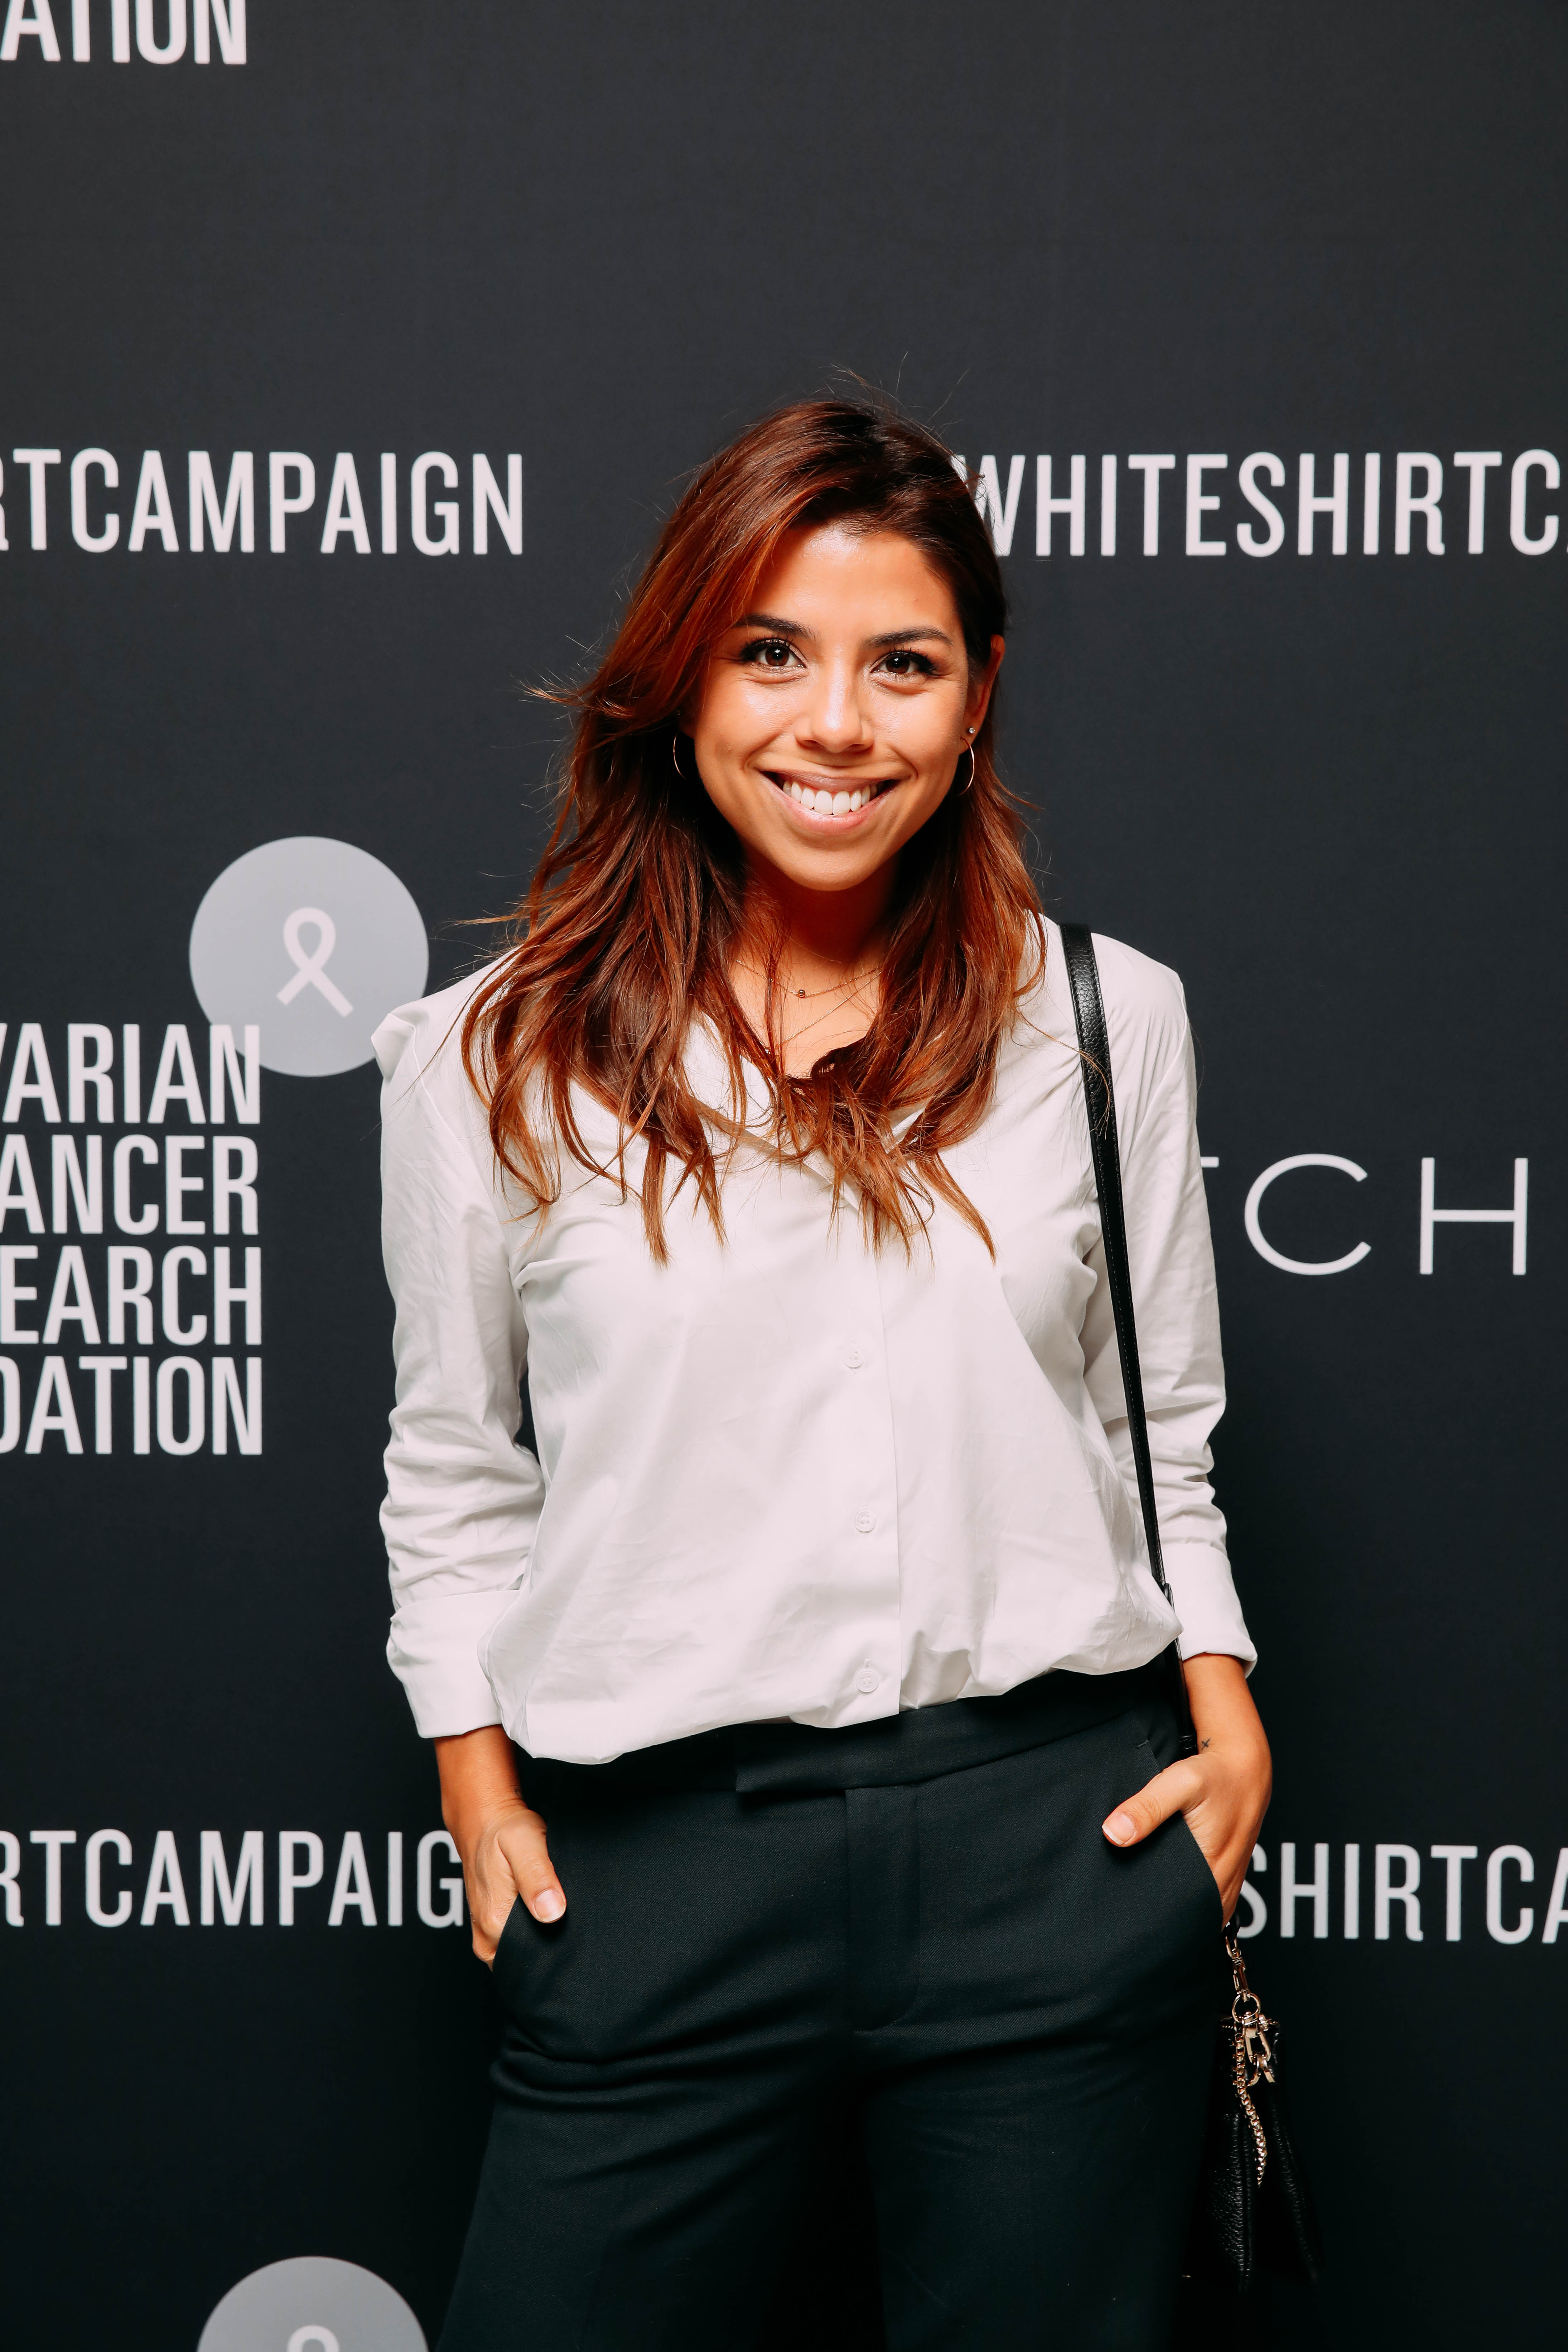 Sally Spratt at the 2019 Witchery White Shirt Campaign Launch